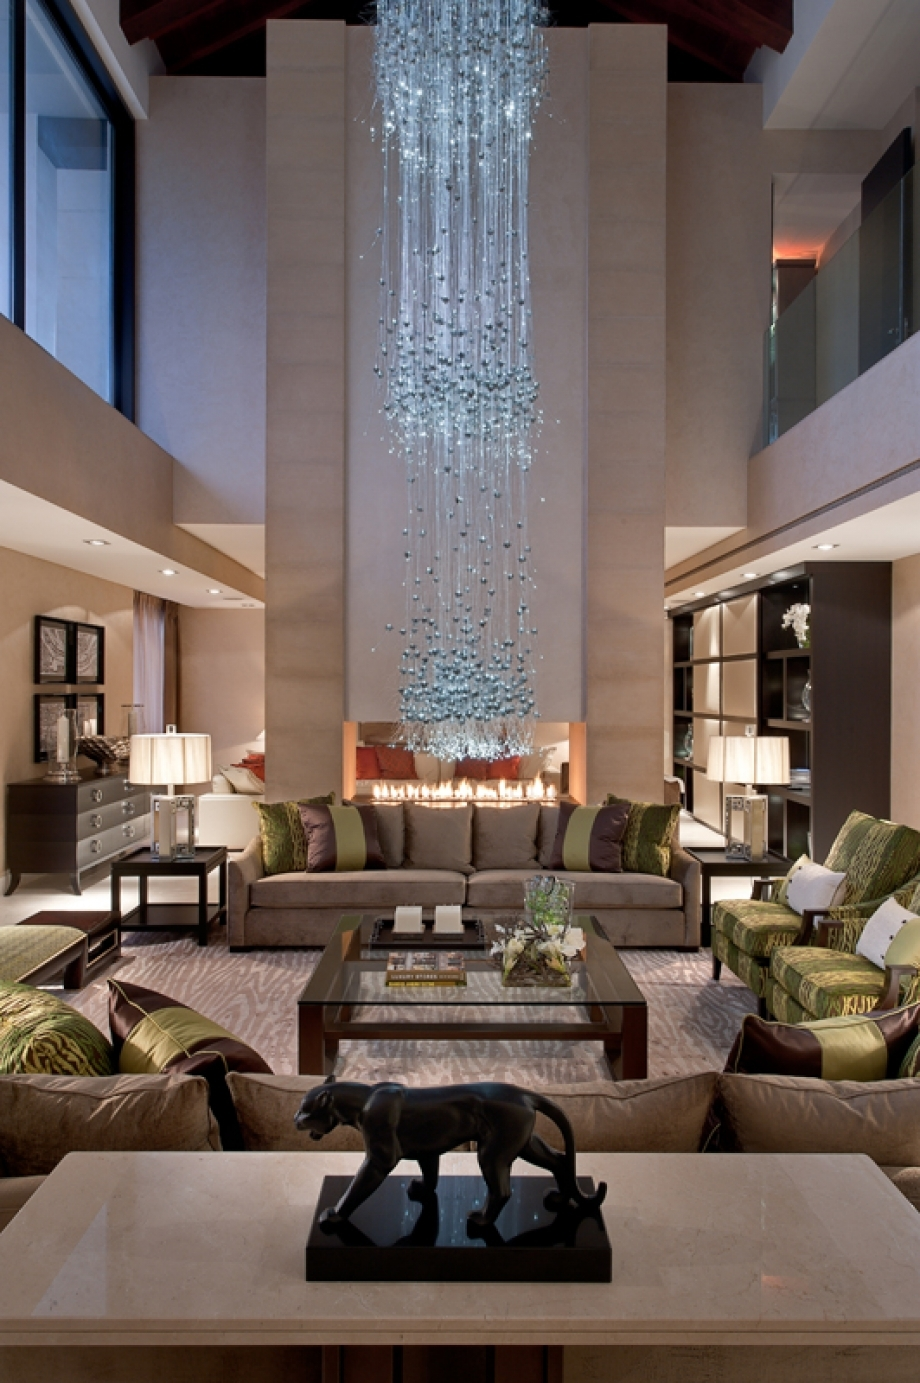 Luxury Chandelier Foe Your Living Room 2 Pertaining To Living Room Chandeliers (View 8 of 25)